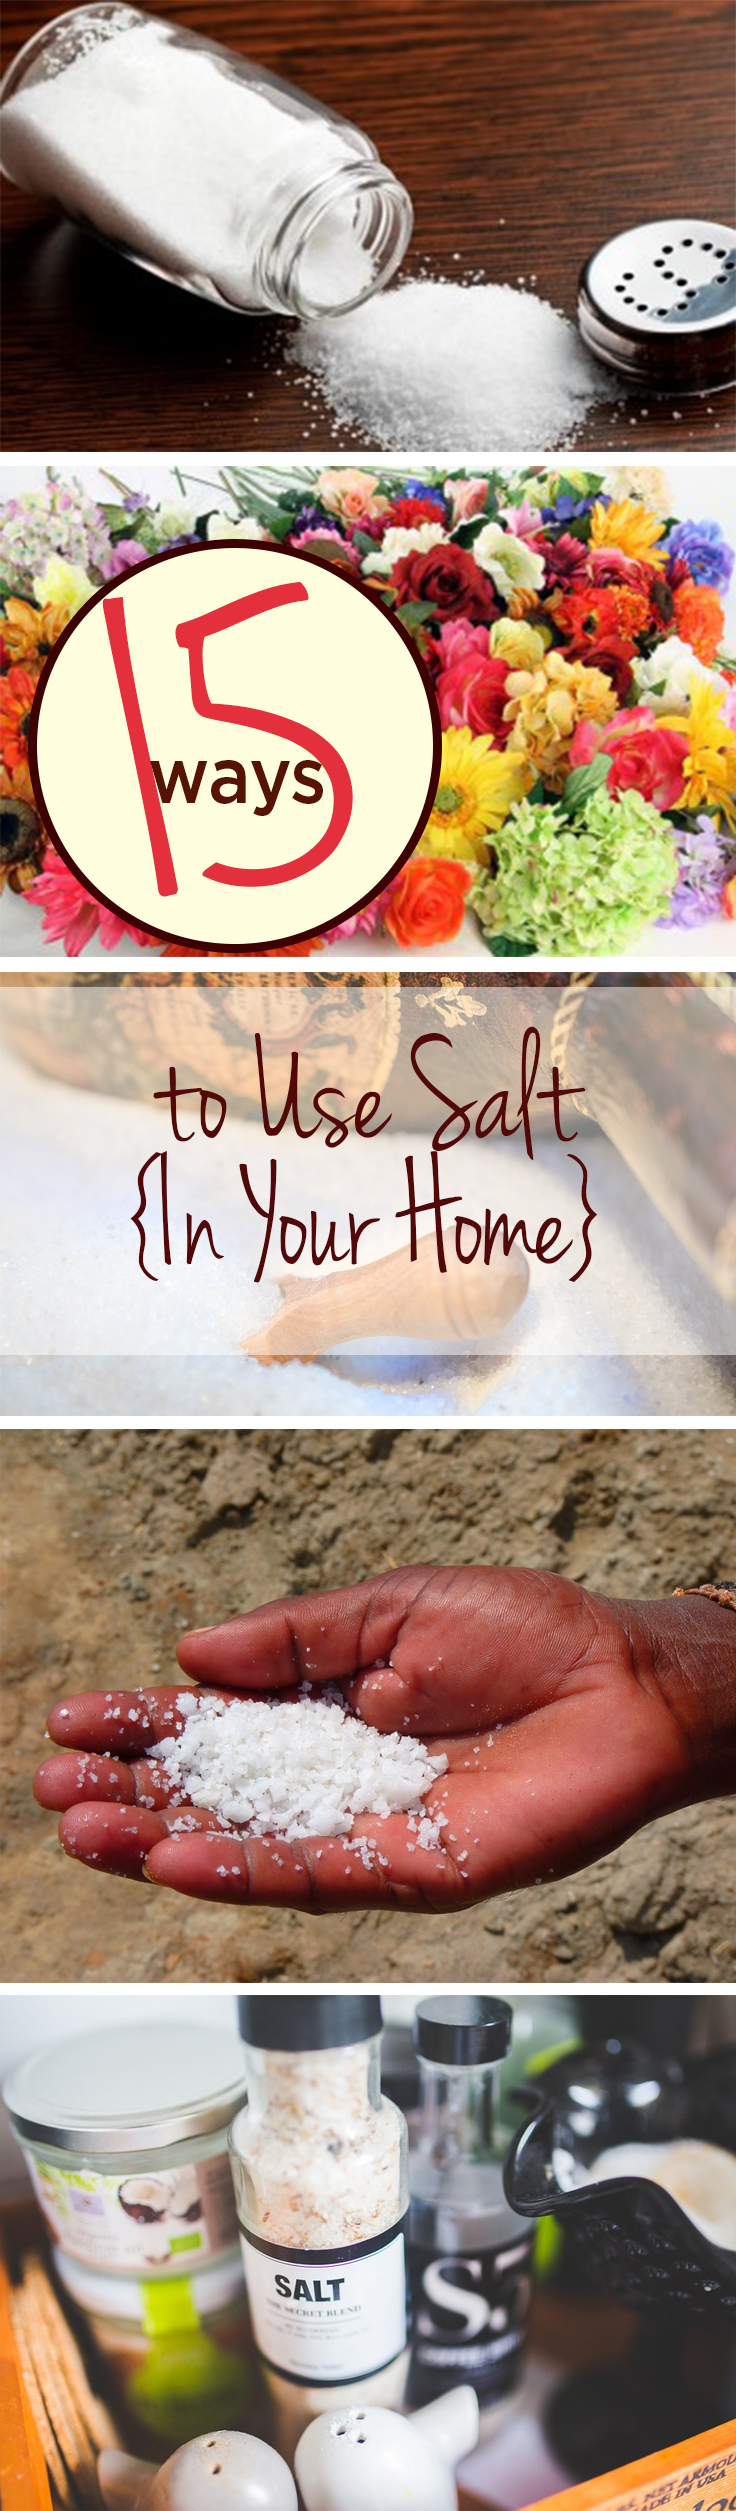 Salt, things to do with salt, salt hacks, popular pin, cleaning, cleaning hacks, clean home, organized life